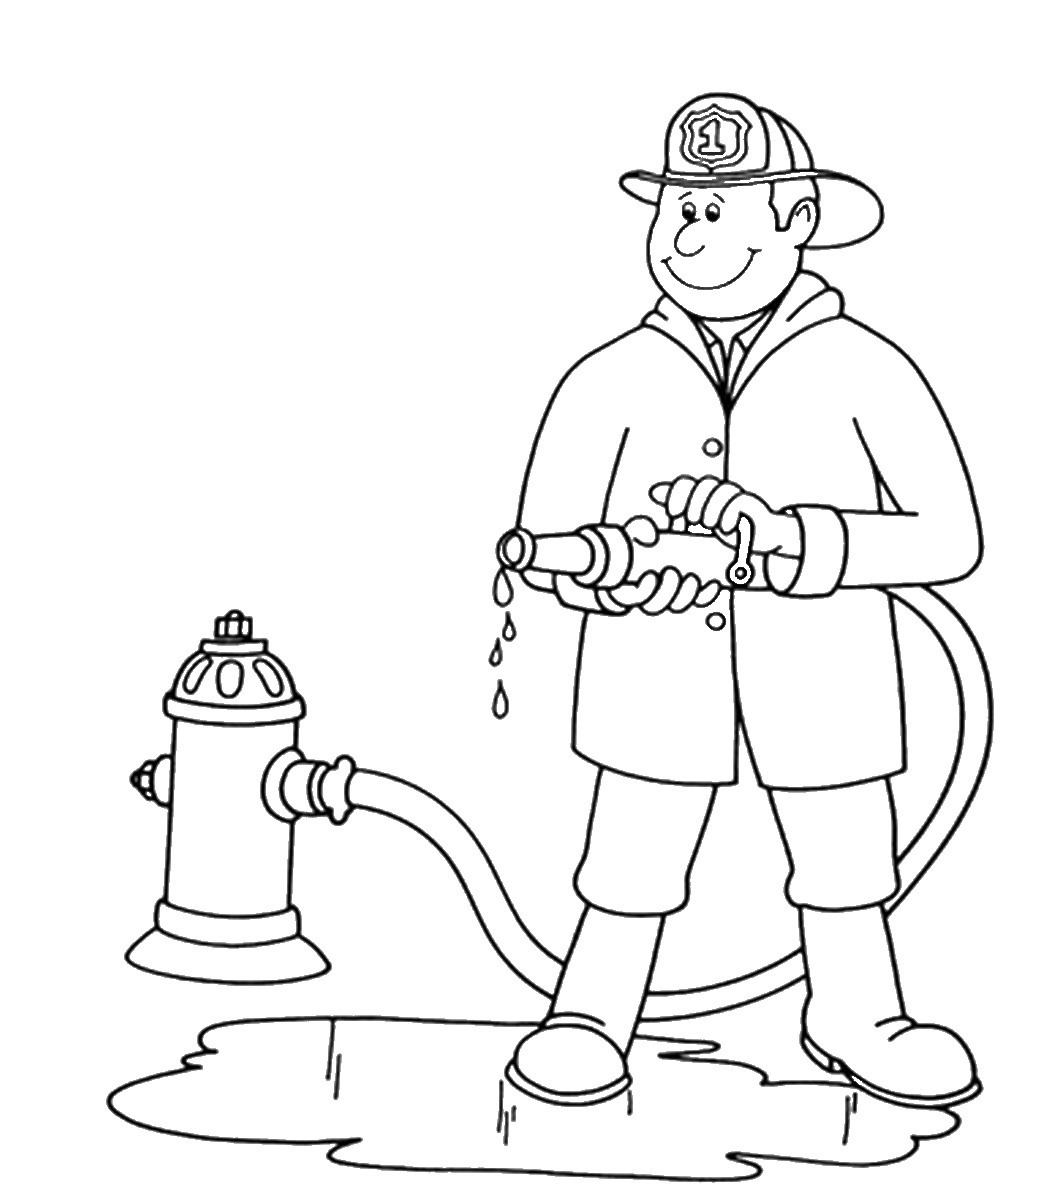 fire man coloring pages - photo#16